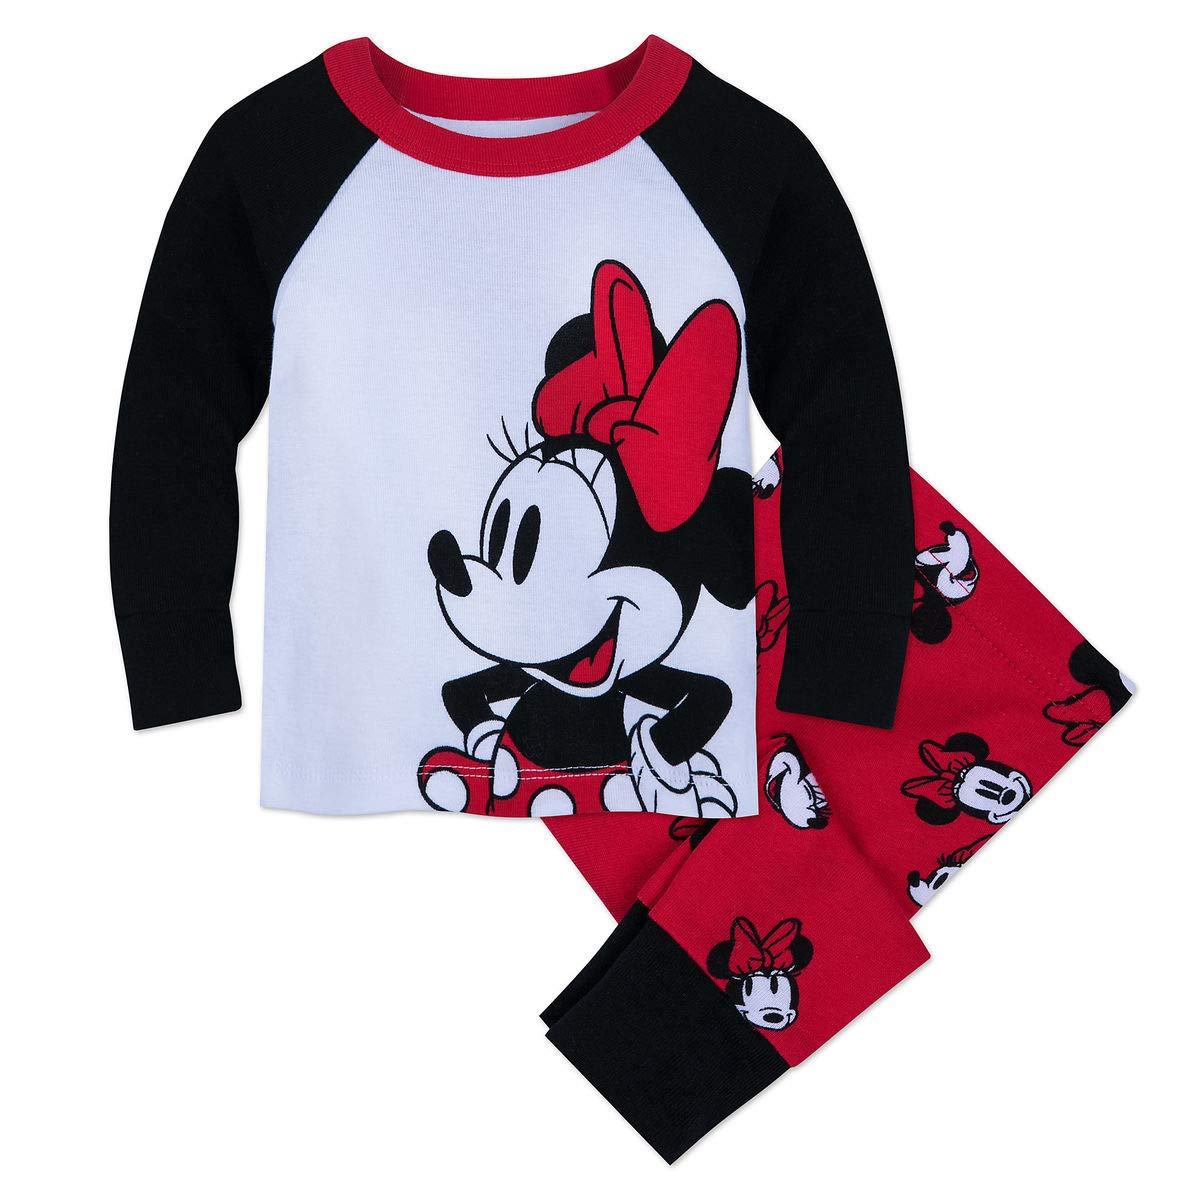 Disney Minnie Mouse PJ PALS for Baby Size 9-12 MO Multi